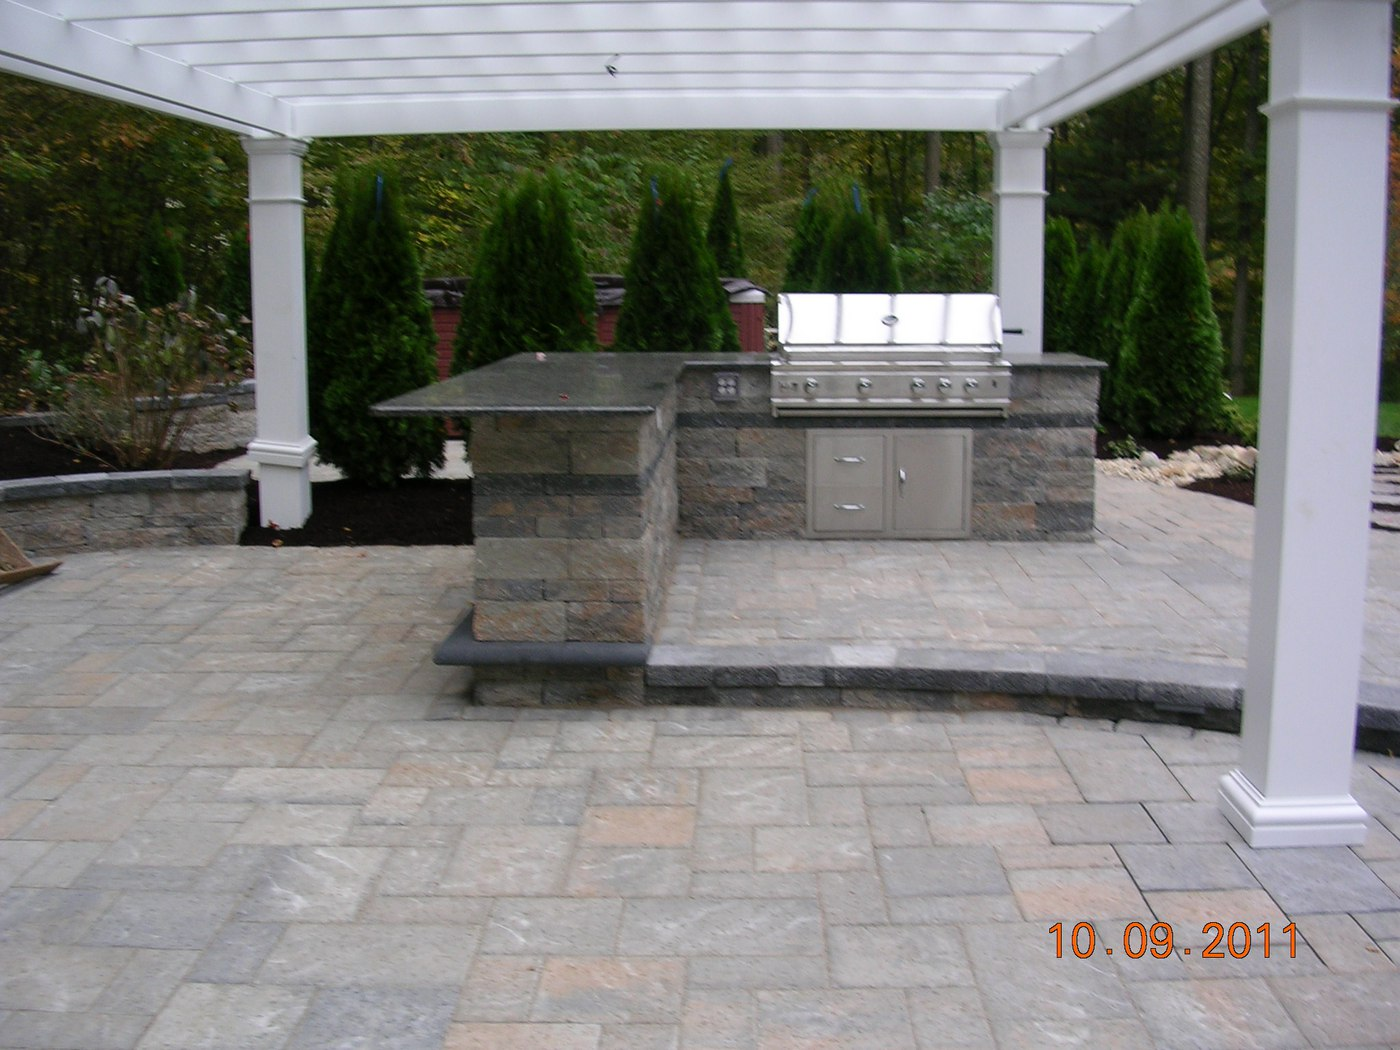 Outdoor Kitchen and Bar with Stainless Steel Grill and Pergola set on a Paver Patio by Bahler Brothers in Hebron, CT